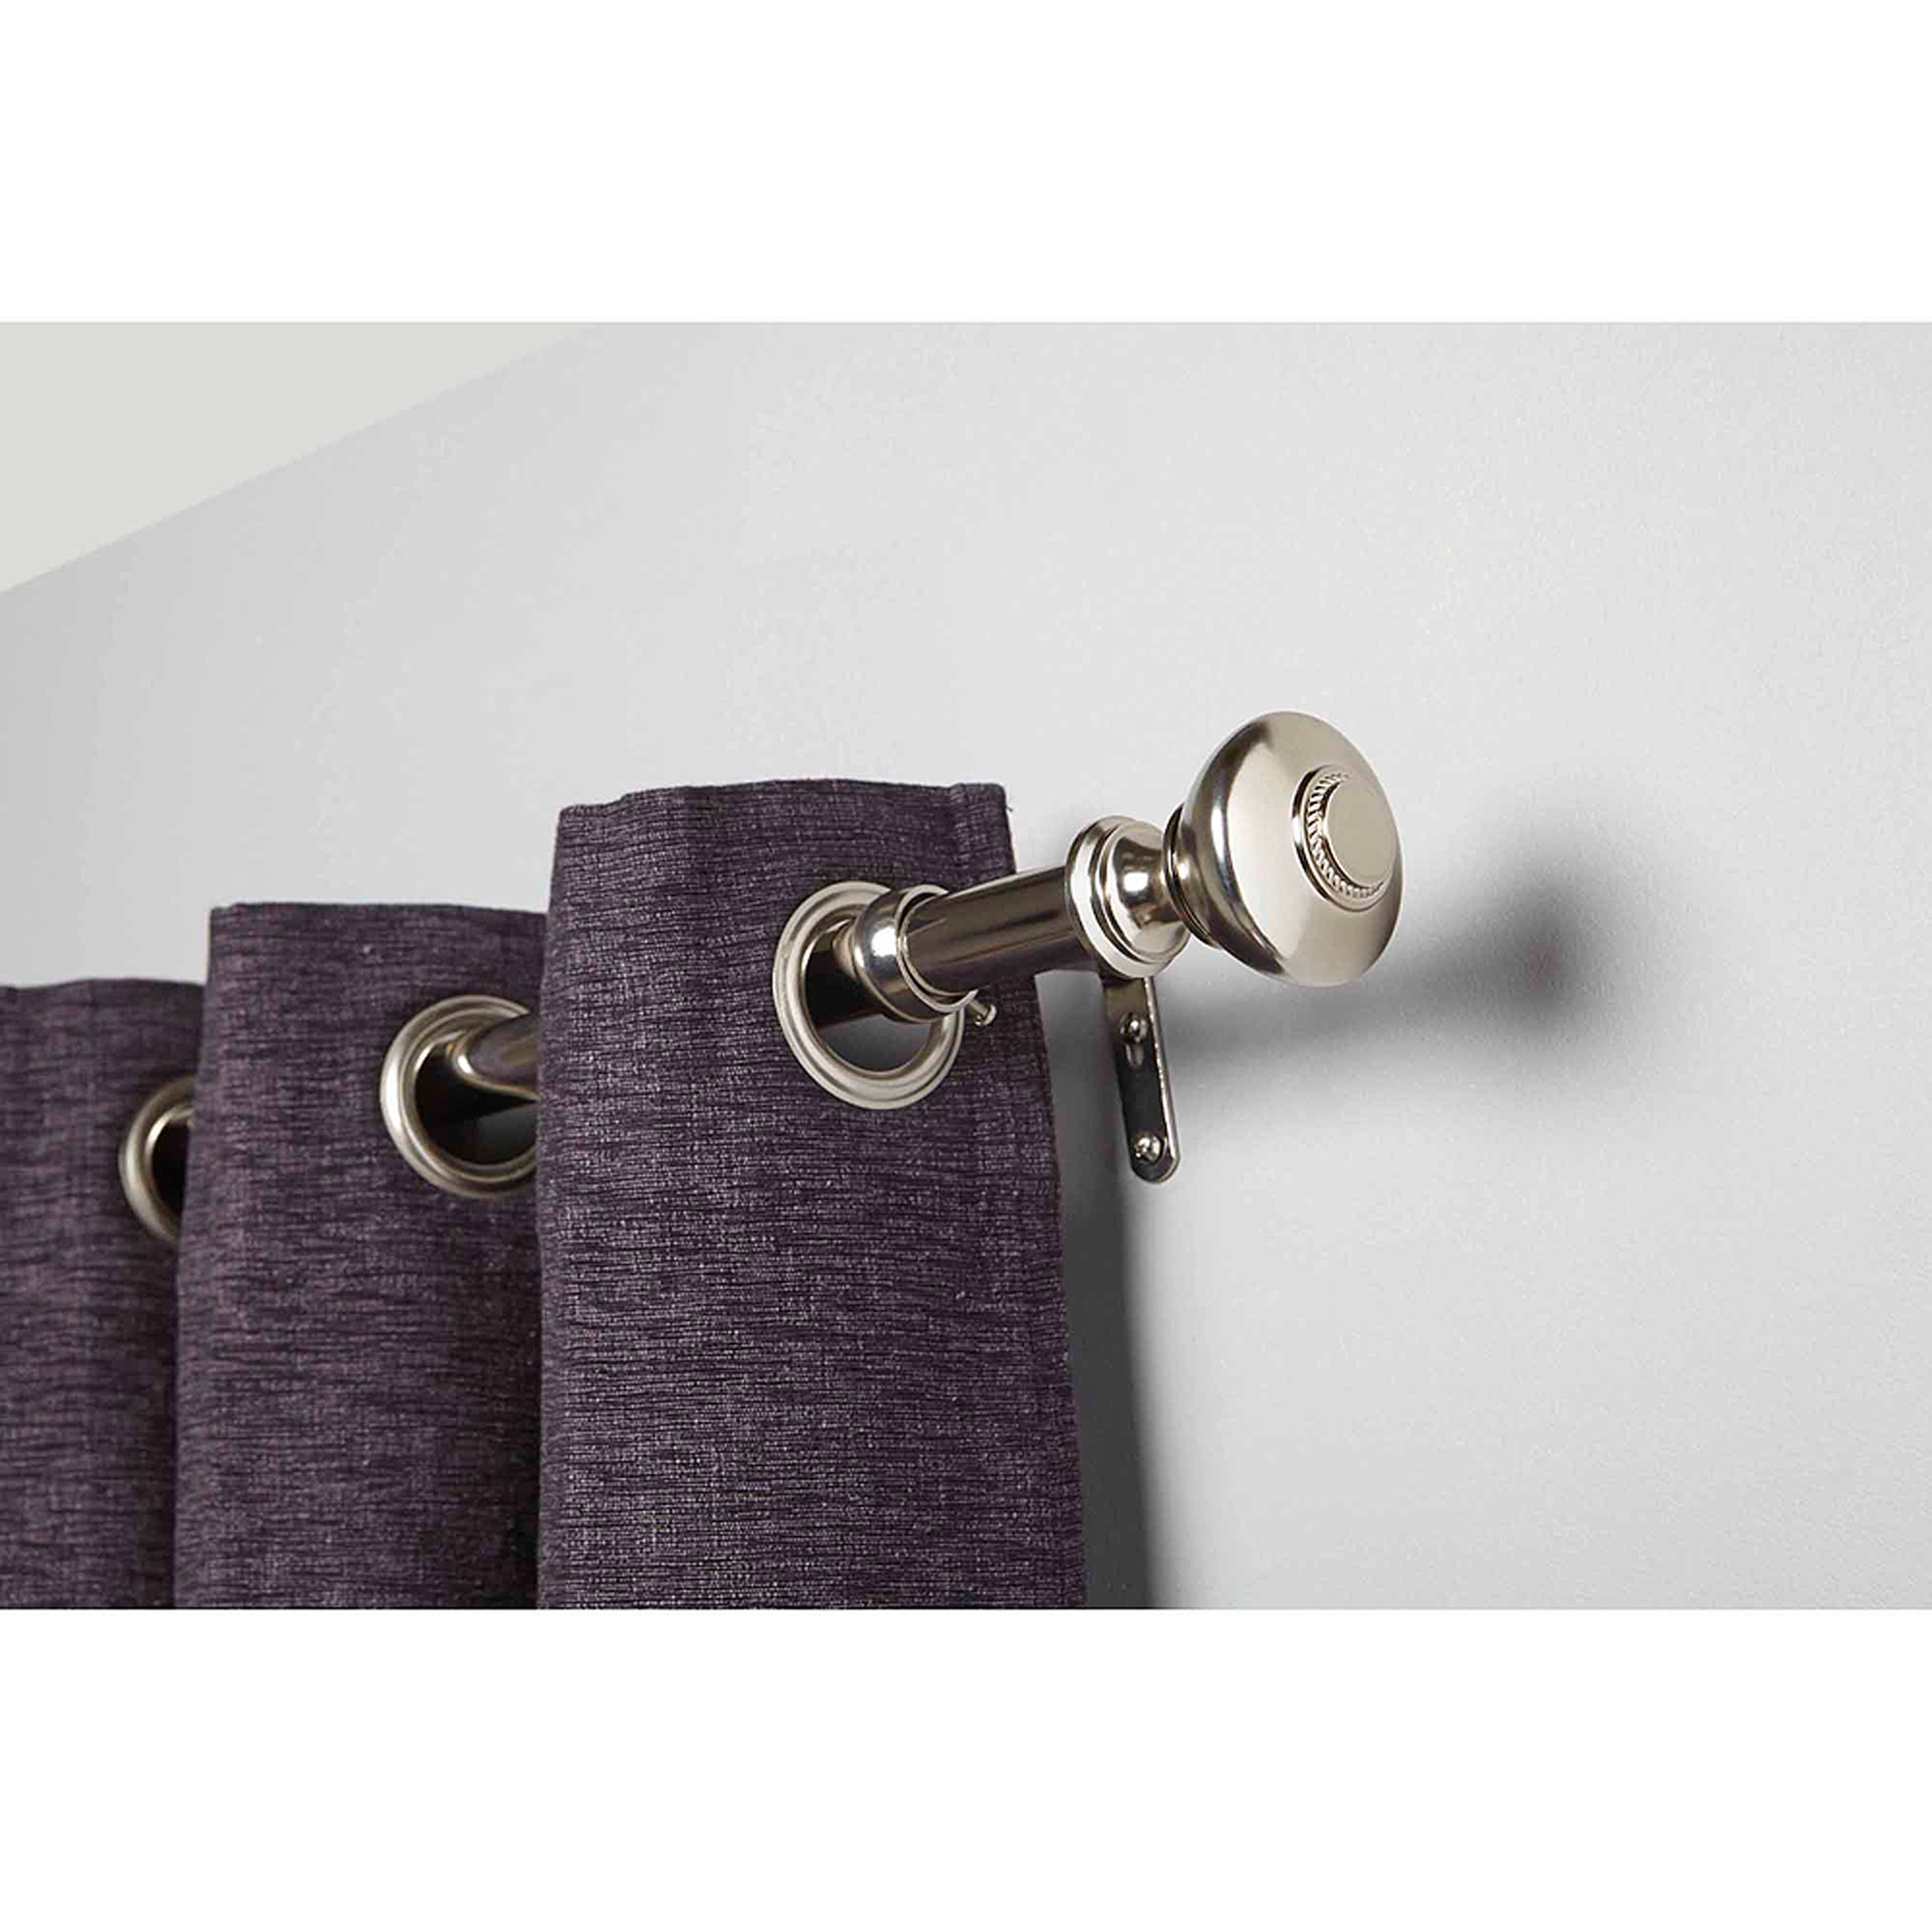 Better Homes and Gardens Silver Knob Curtain Rod Set, Nickel by